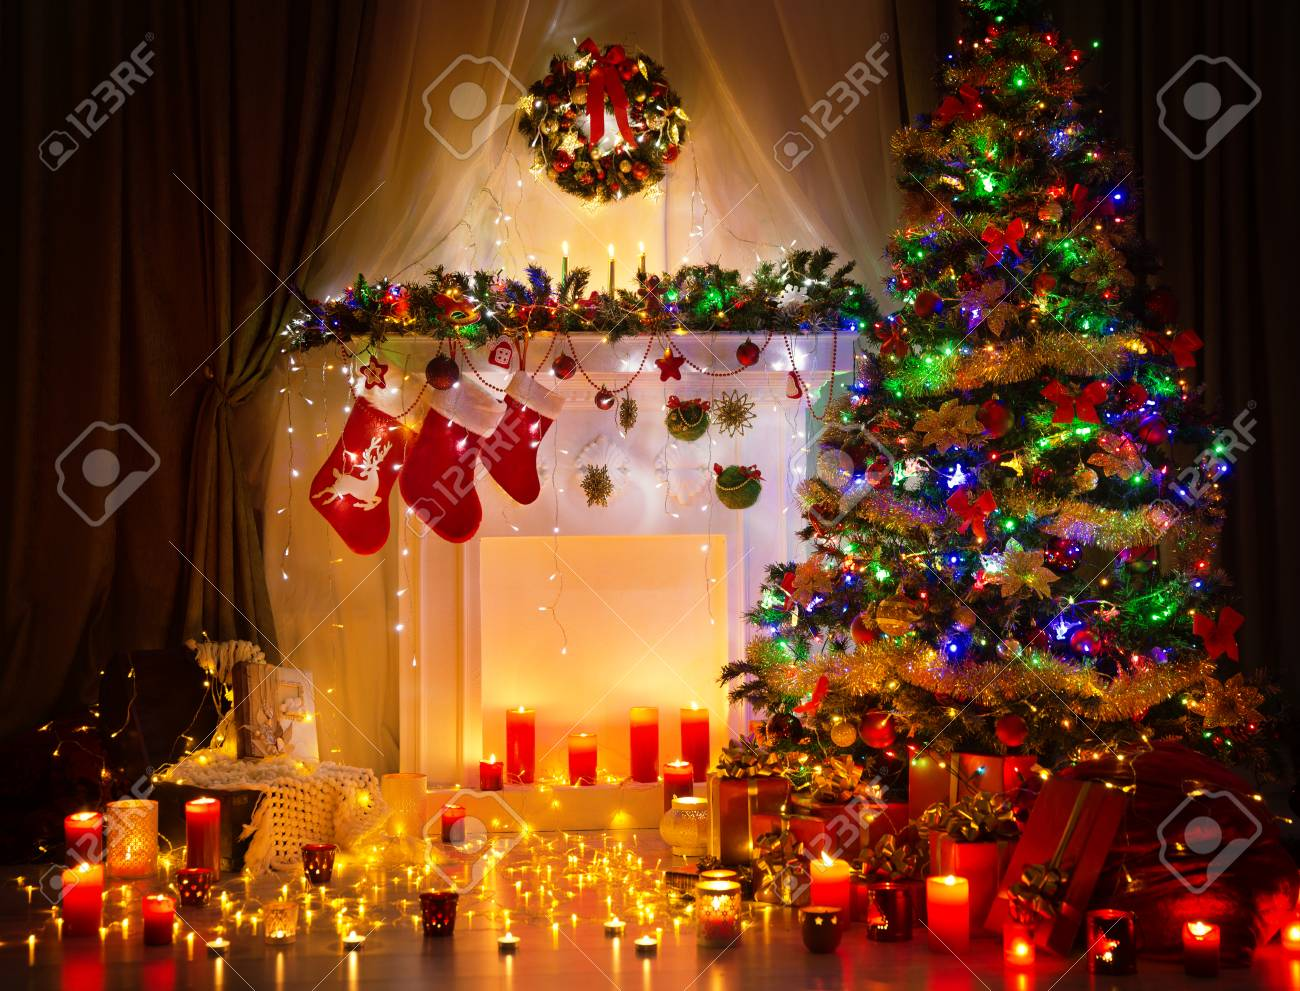 Christmas Tree Night Room Interior Home Decoration Lights On Stock Photo Picture And Royalty Free Image Image 64012714